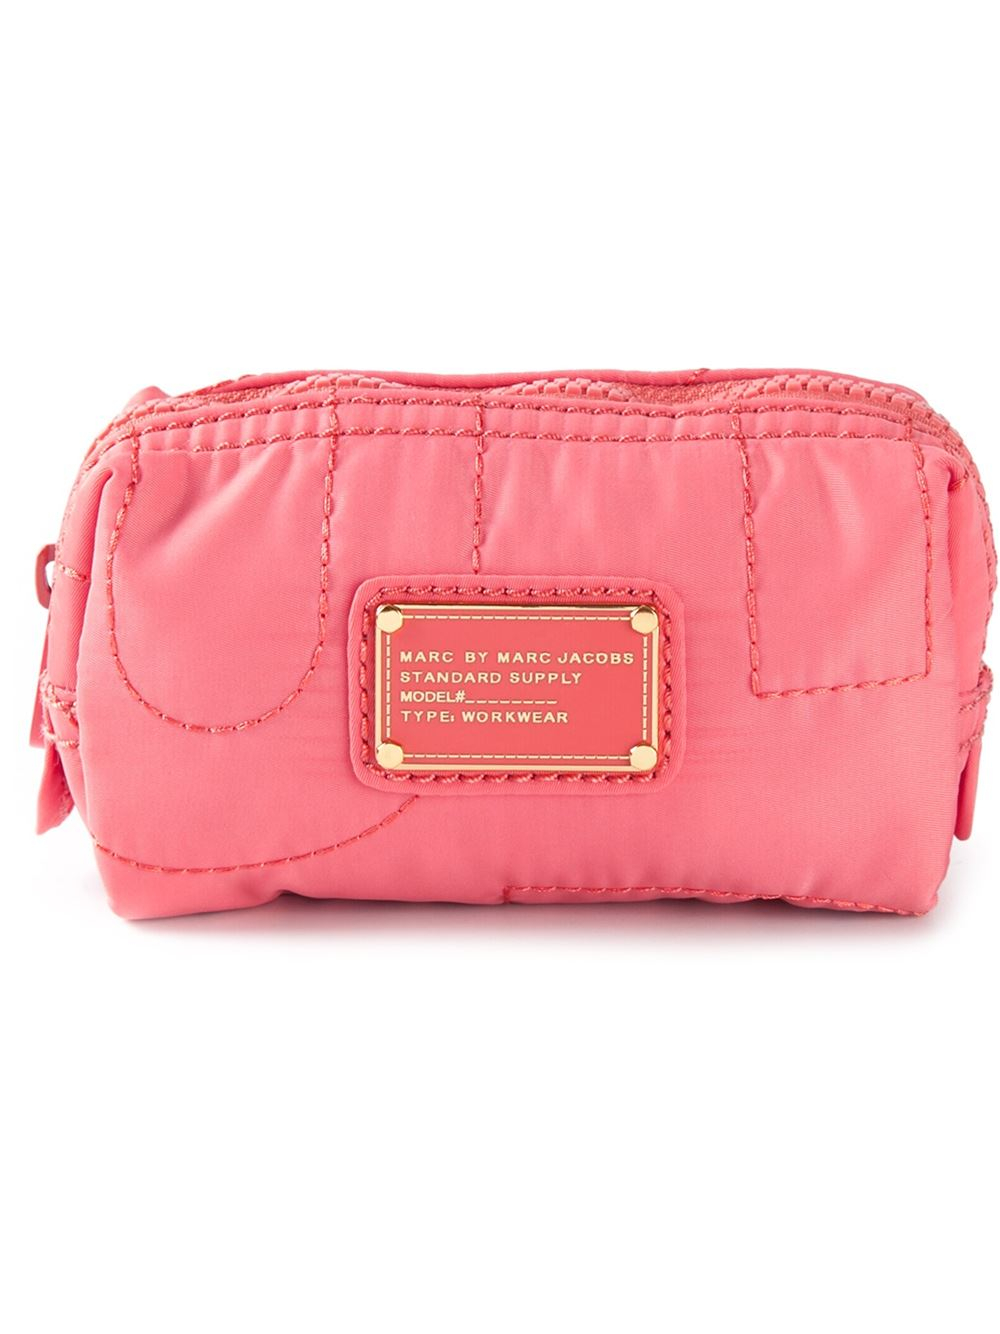 76b5c3ca8536 Lyst Marc By Jacobs Quilted Cosmetic Bag In Pink Case B Y O T Small  Cosmetics M0009485